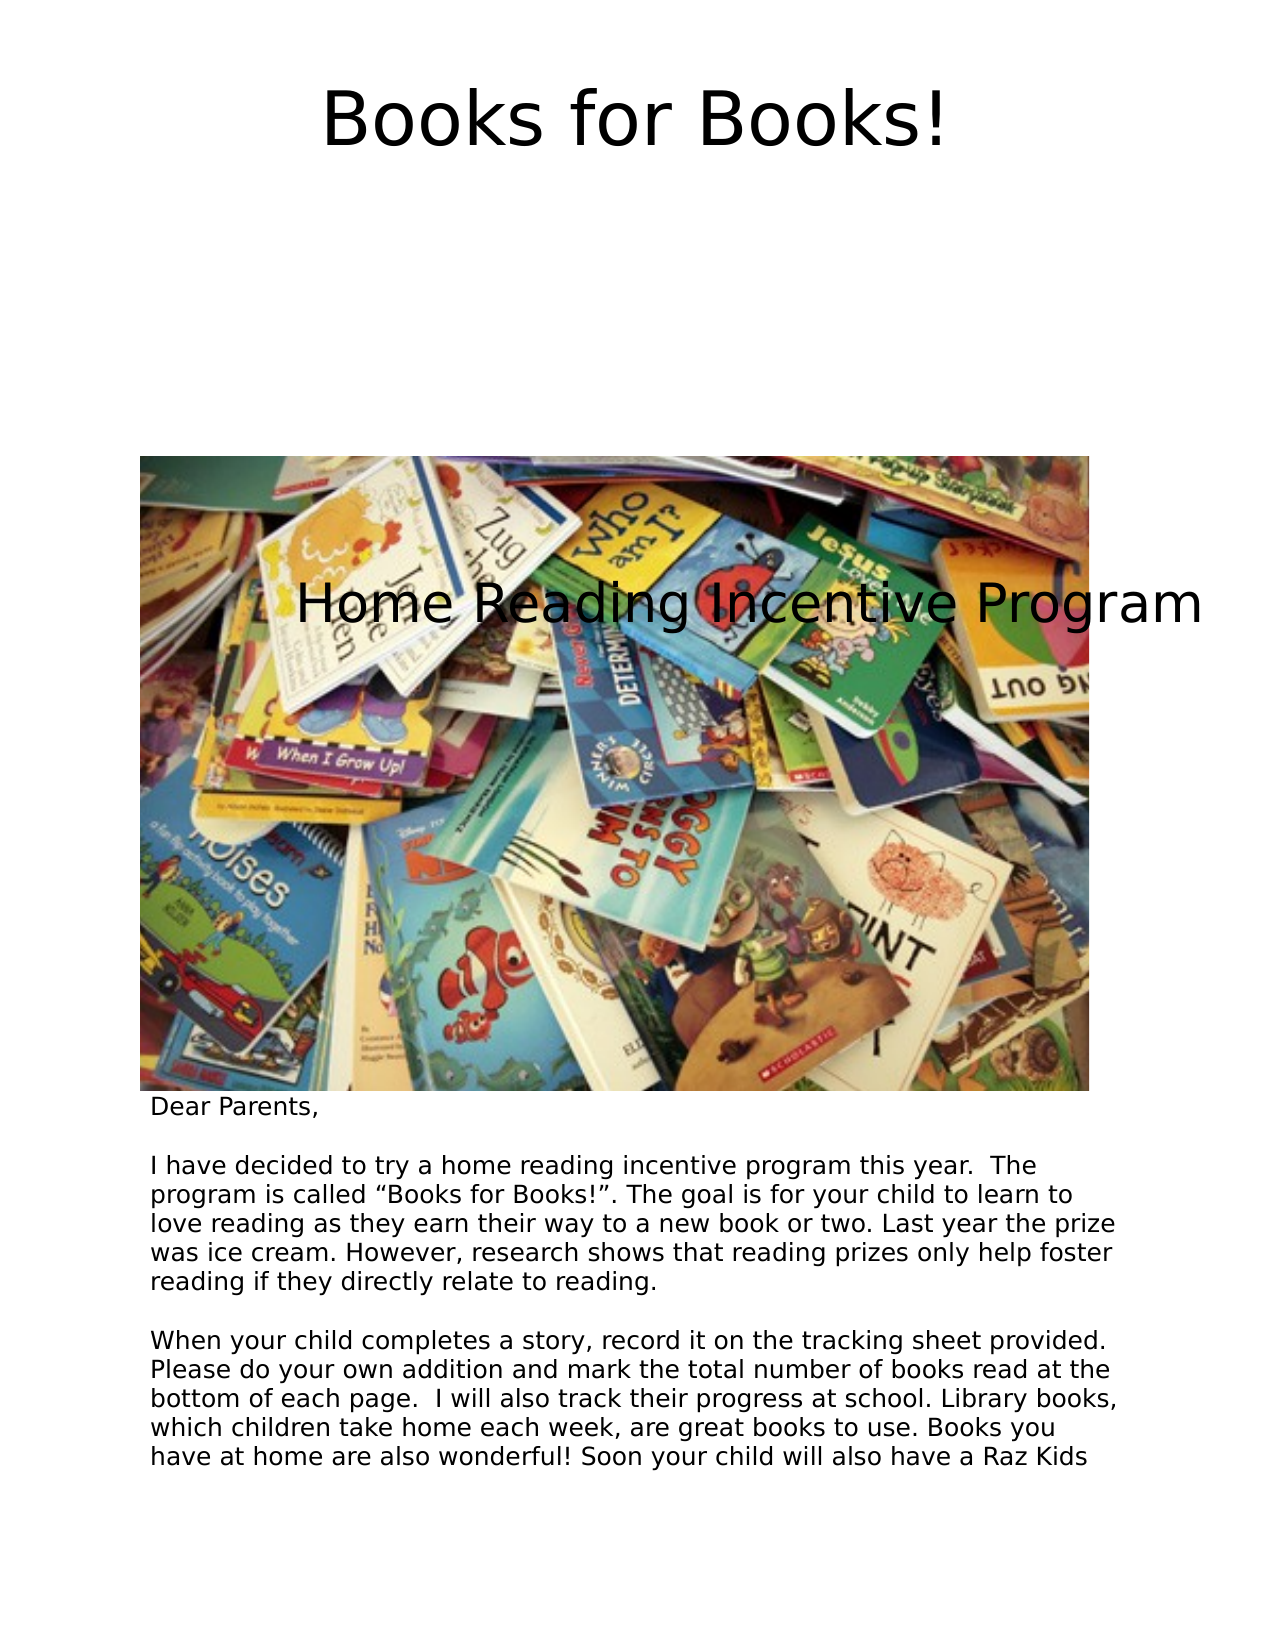 Books for Books Home Reading Incentive Program Resource Preview